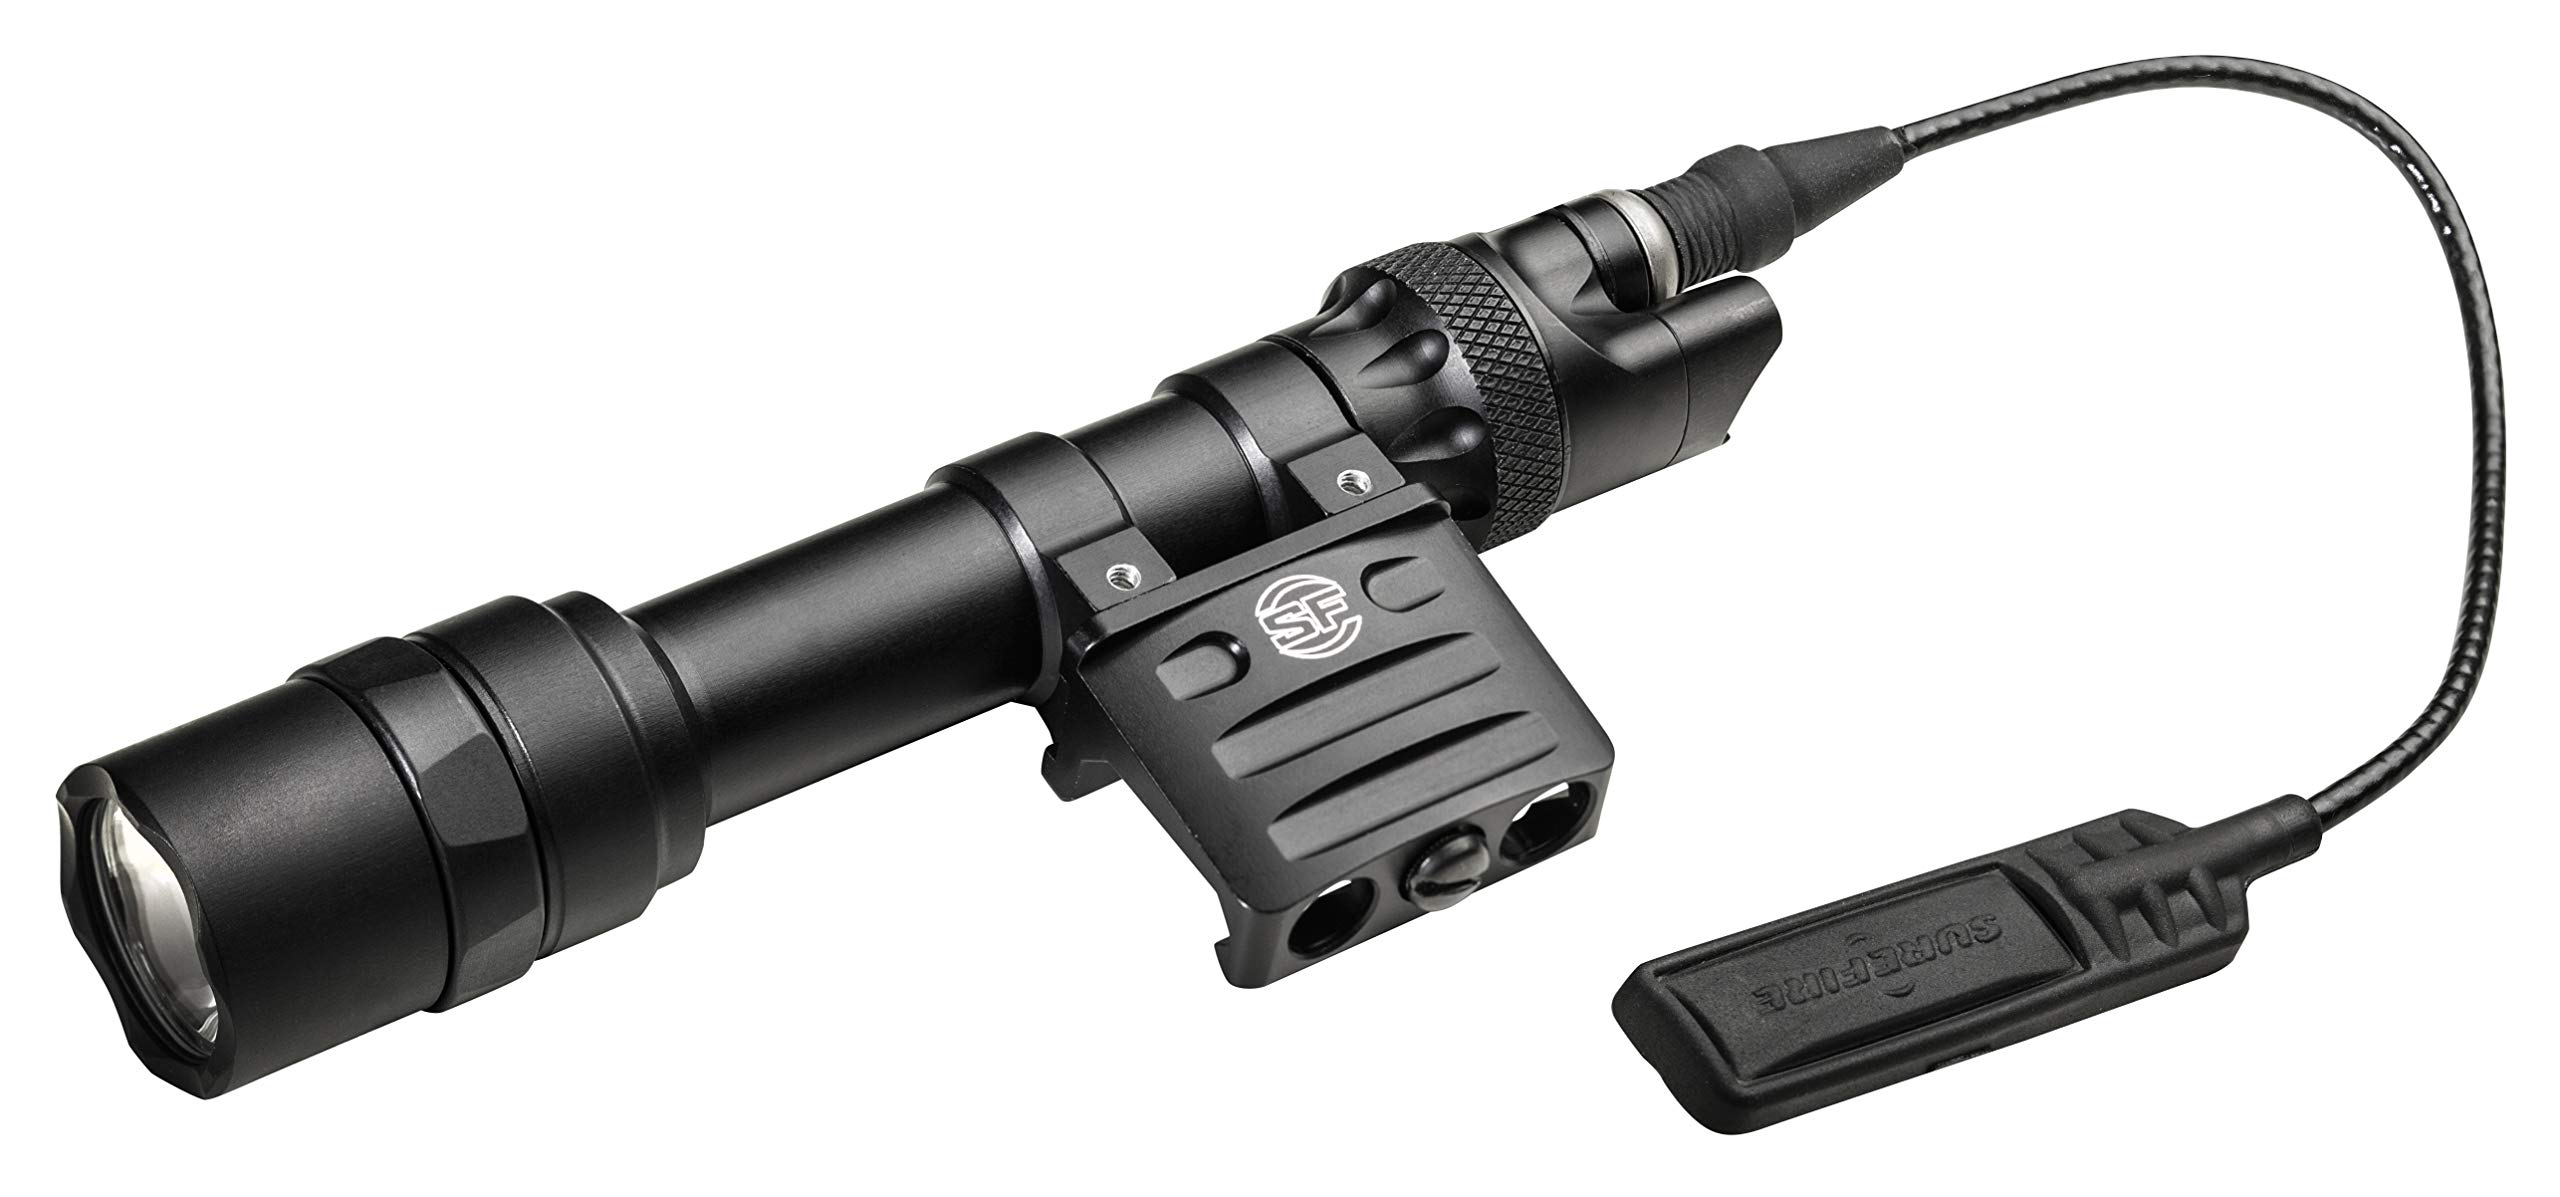 SureFire M600 Scout M612U Ultra Scout Light with RM45 Low Profile Mount and DS07 Switch, Black